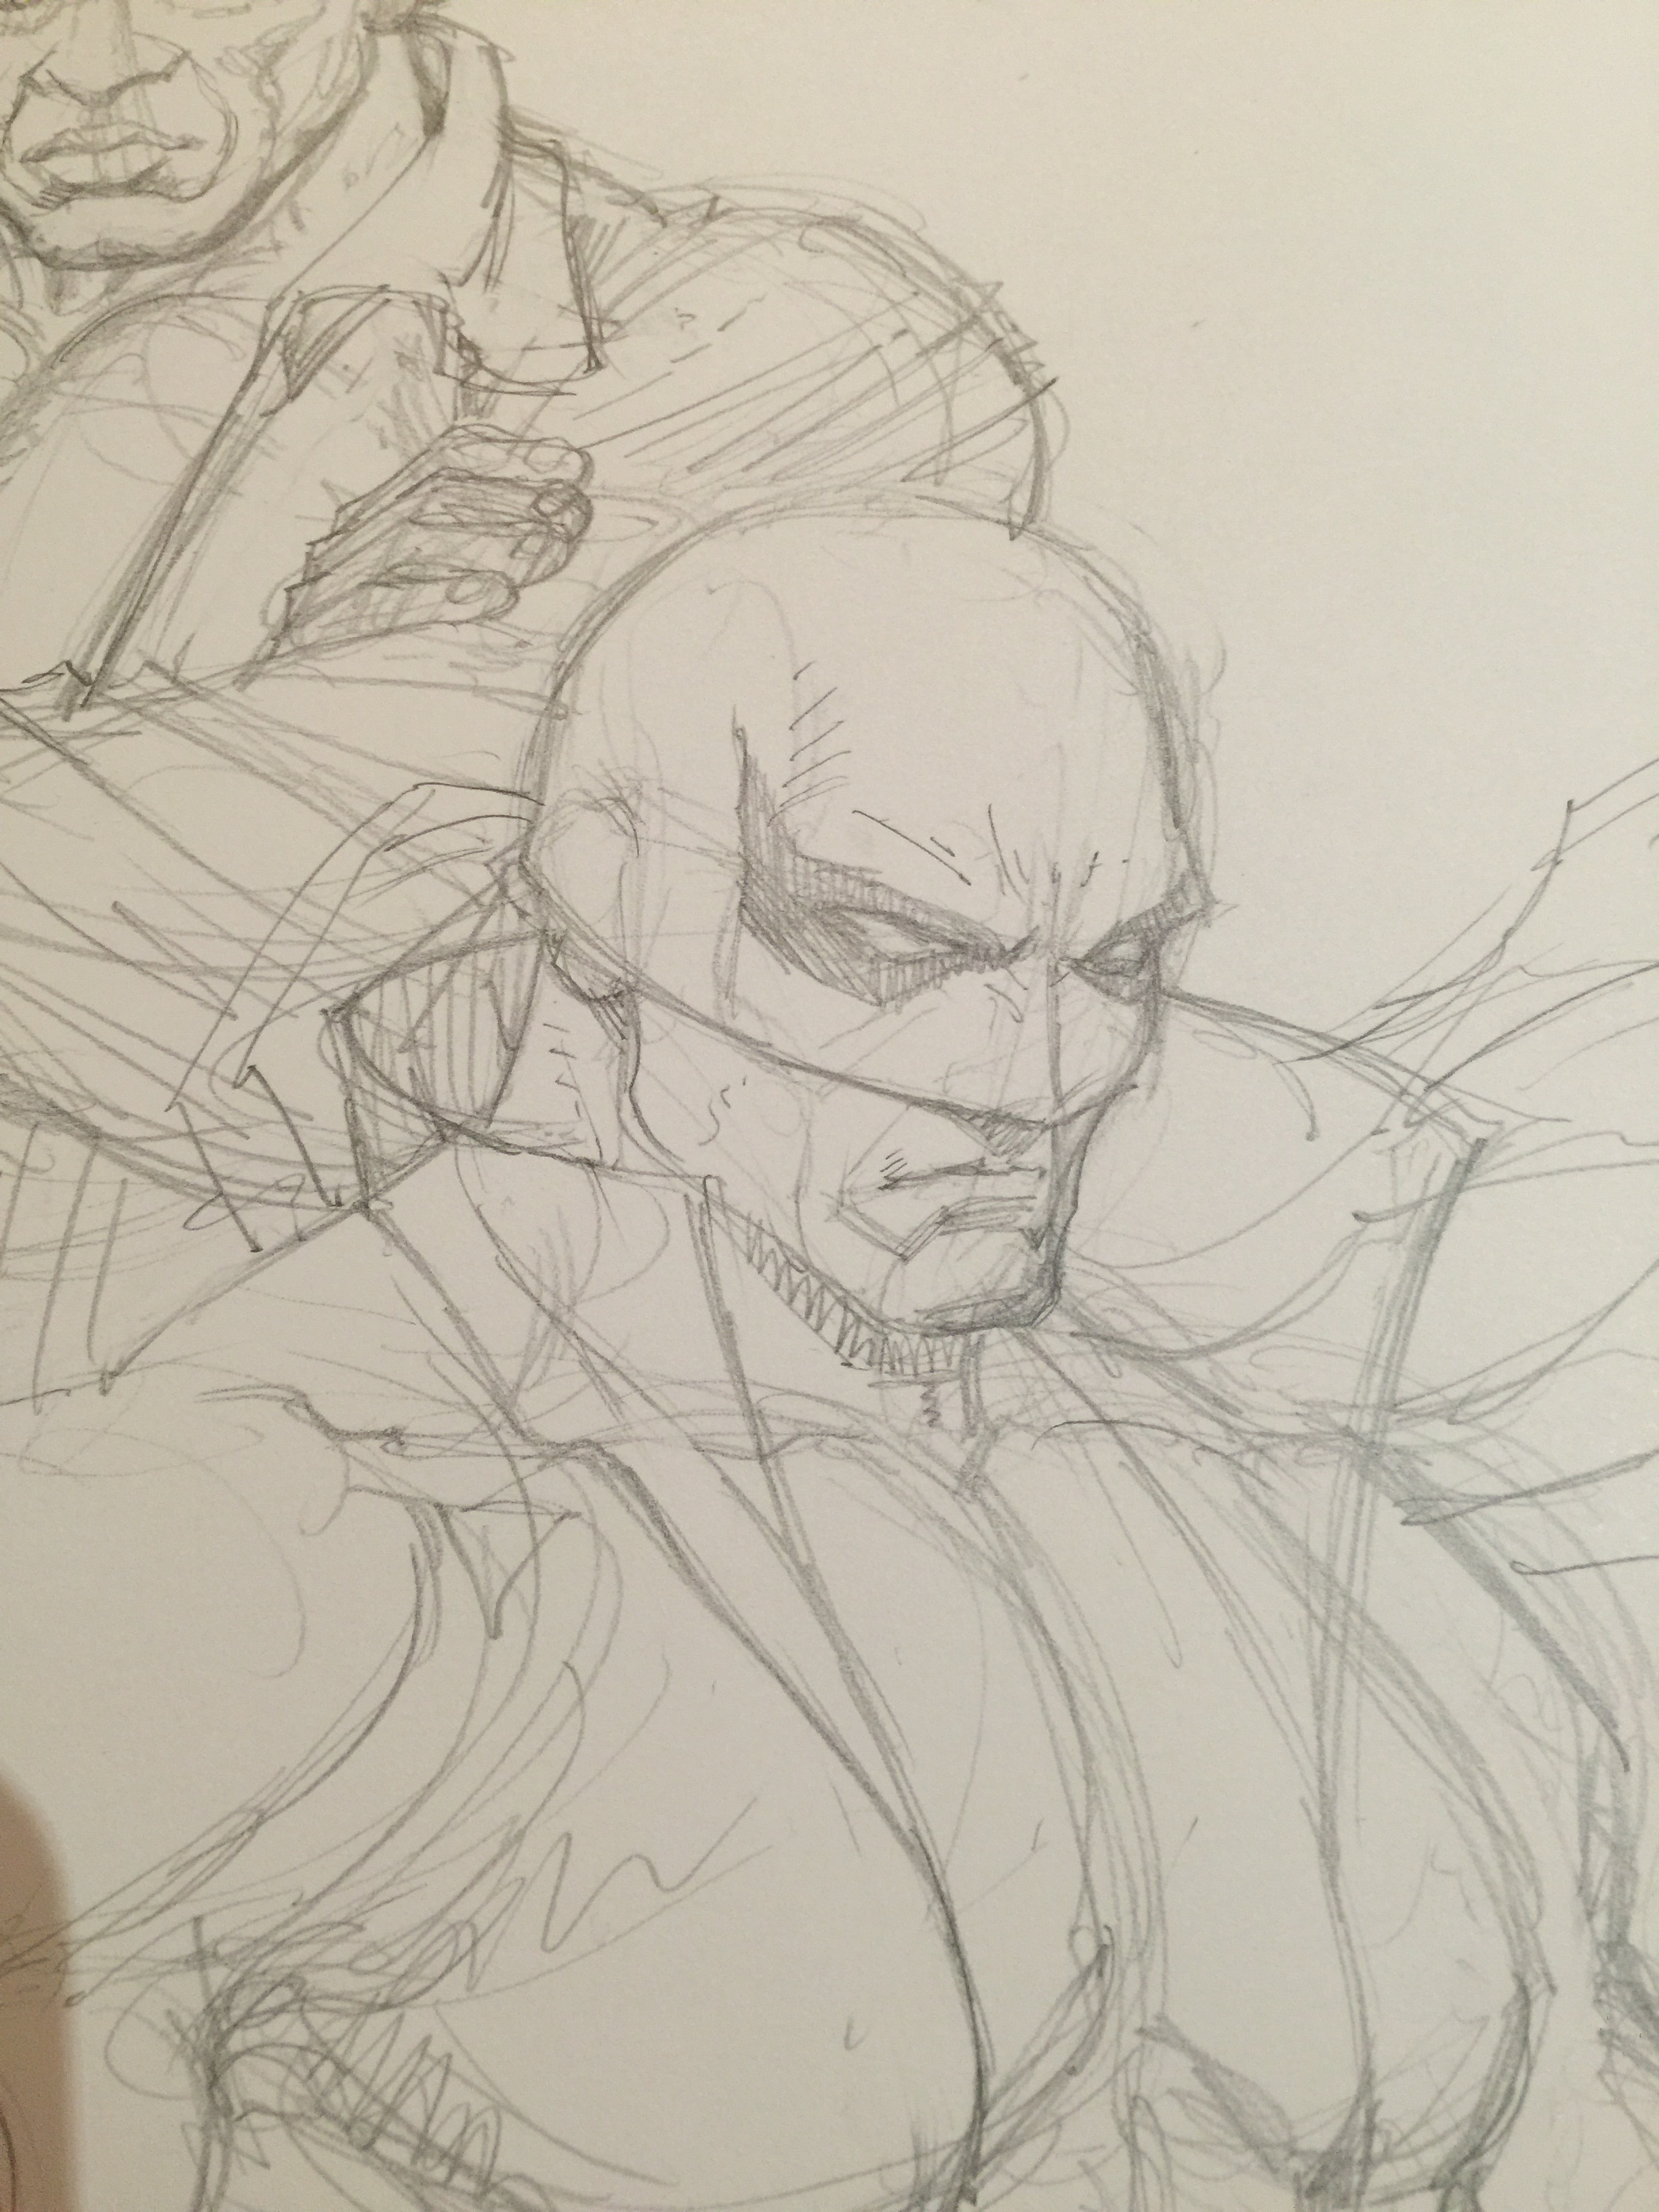 one of my sketches--Iron Fist in progress